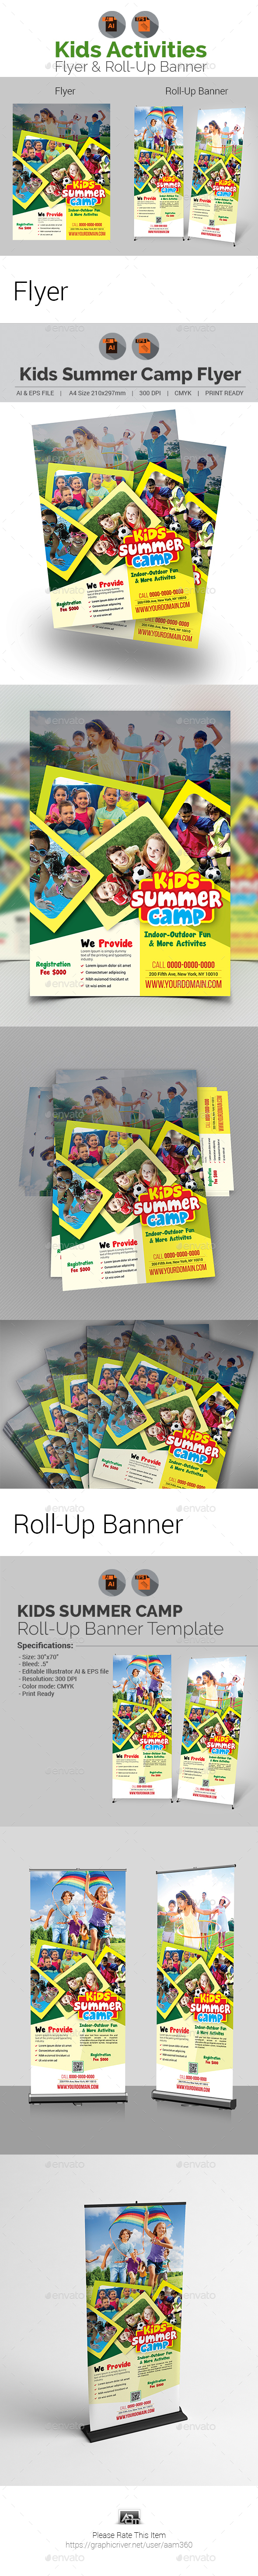 Kids Activities Flyer & Roll-Up Banner - Print Templates